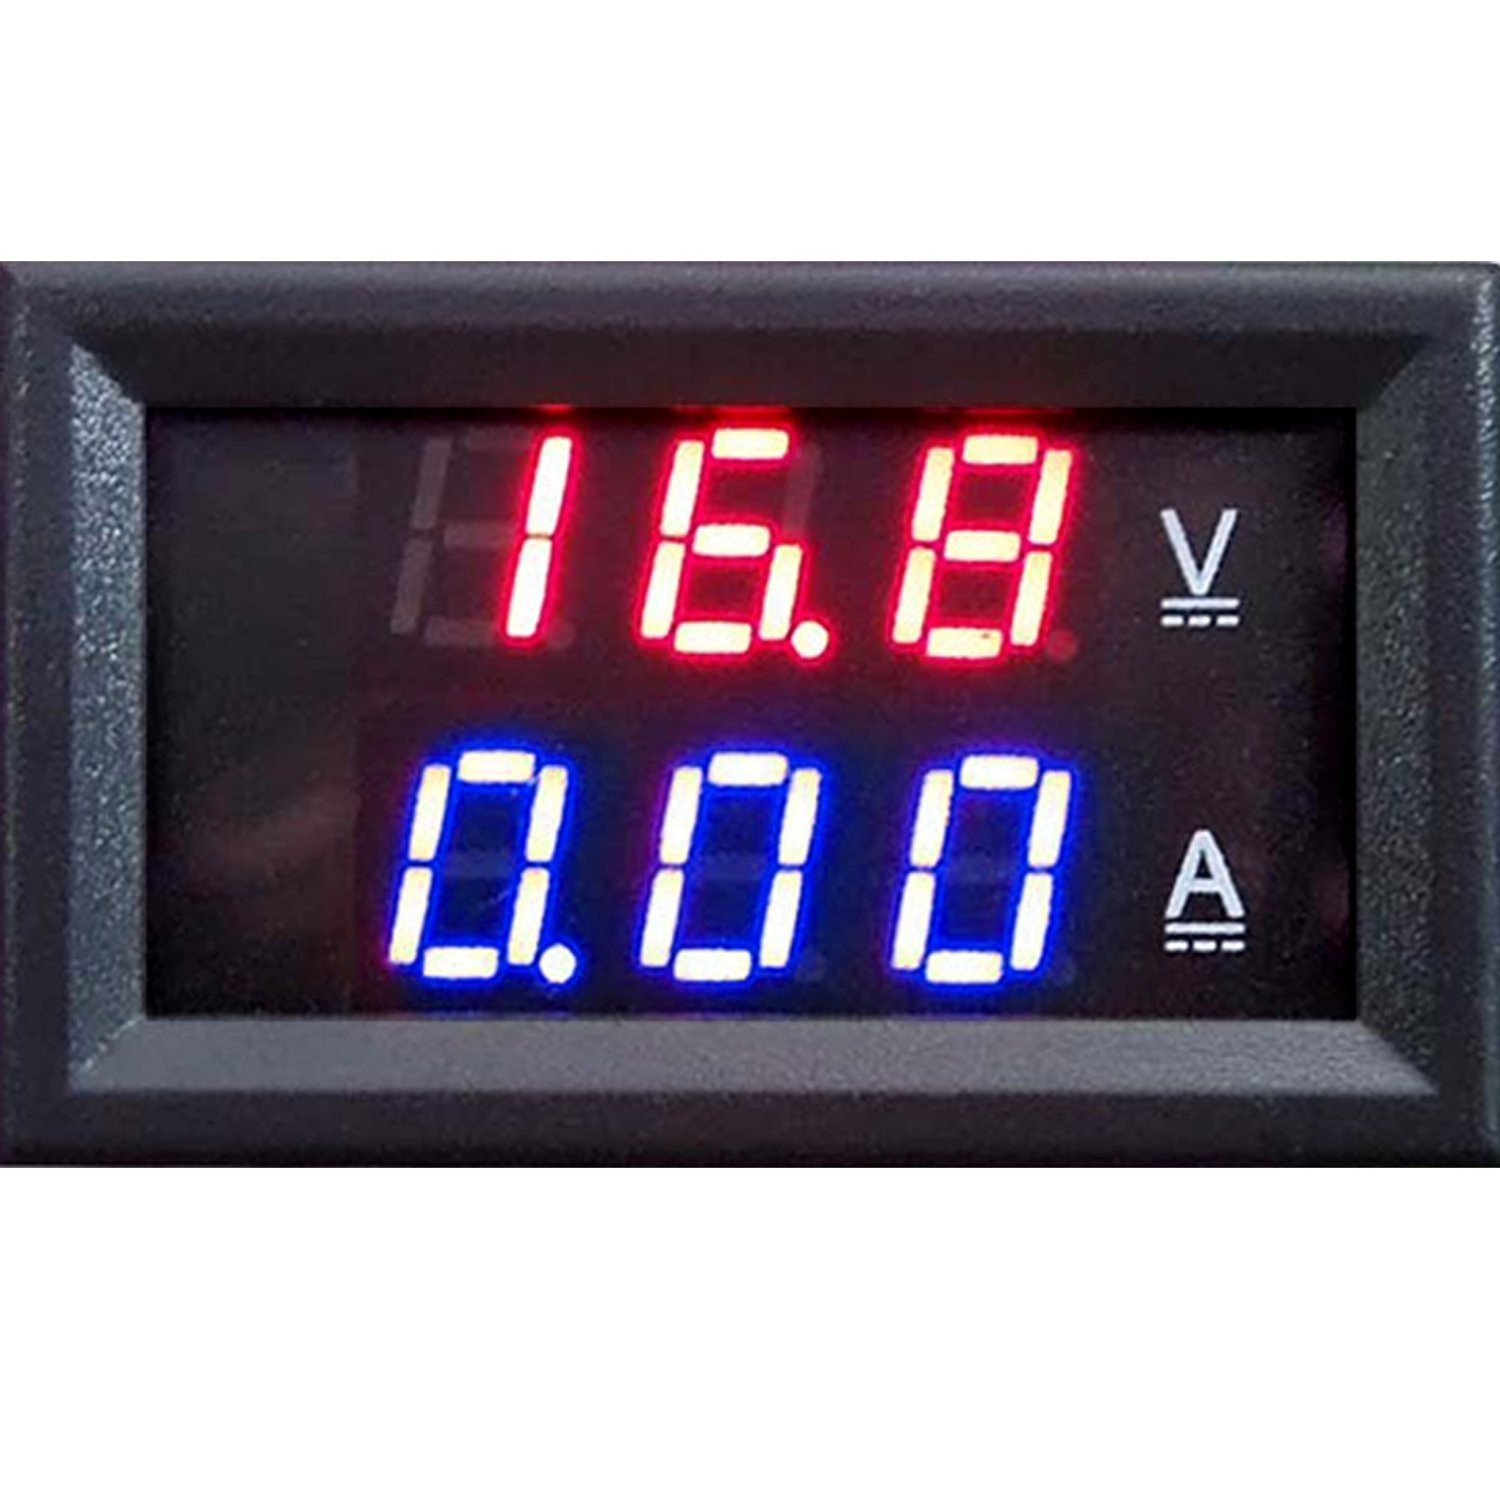 Riorand Dc Volt Amp Meter 2in1 Digital Amperemeter Voltmeter Led Motorcycle Wiring Diagram Zoom